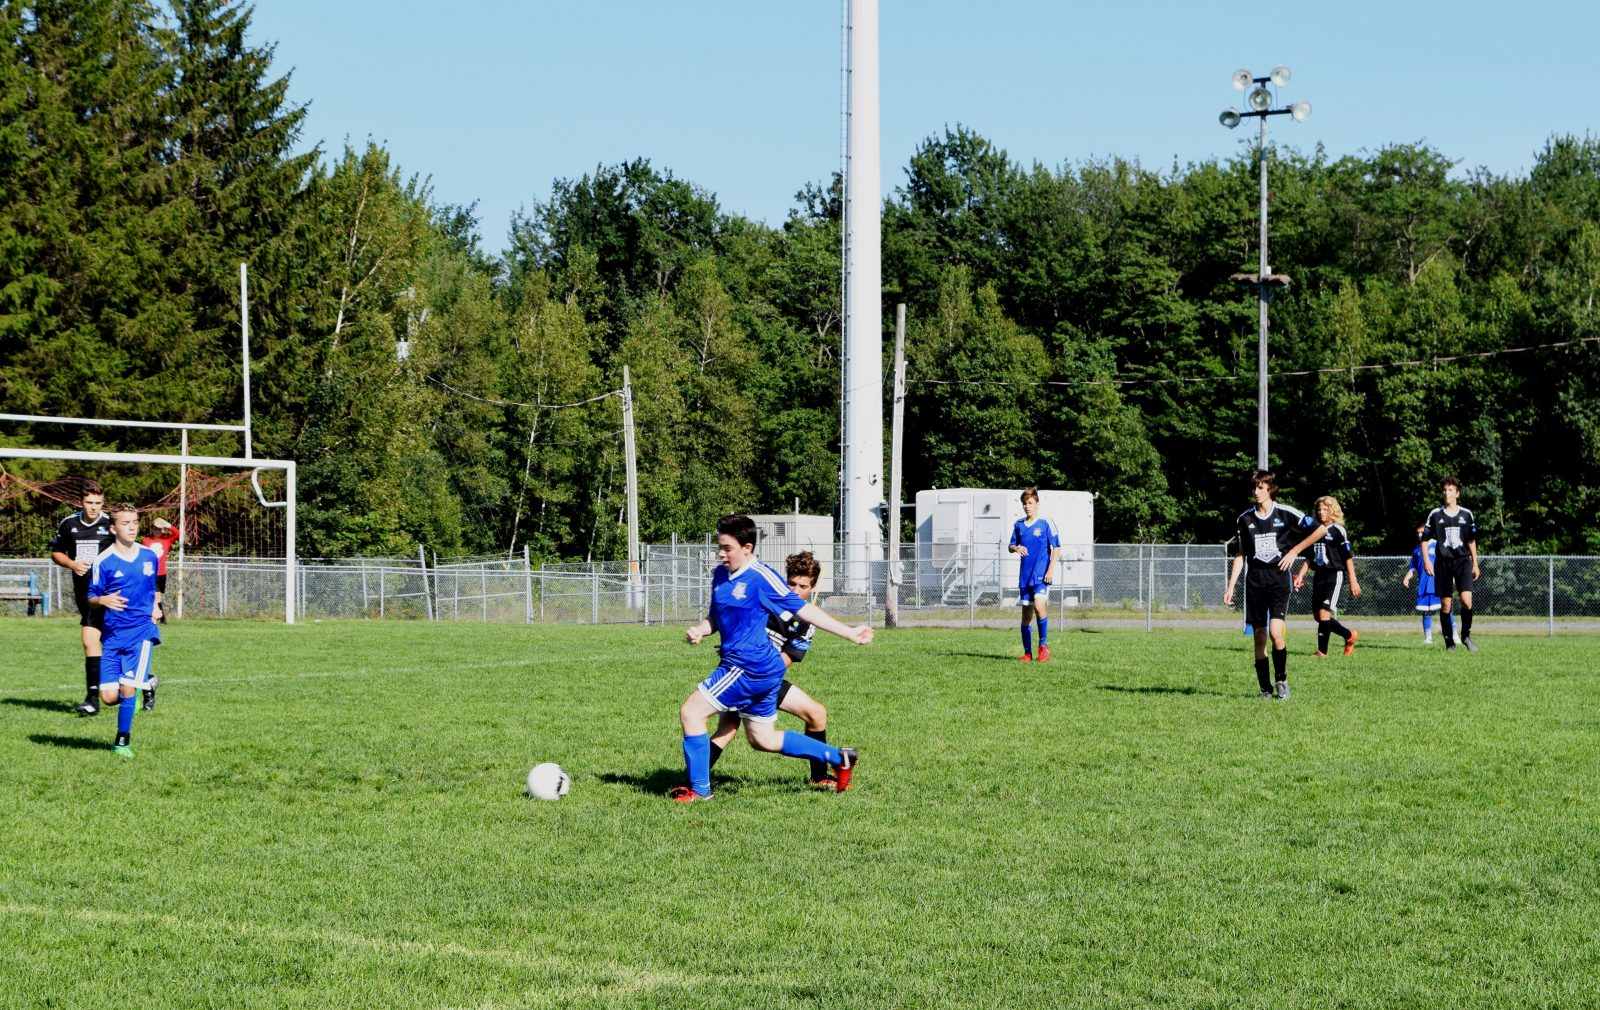 Ligue de soccer Inter-Beauce: plus de 1 000 jeunes en attente